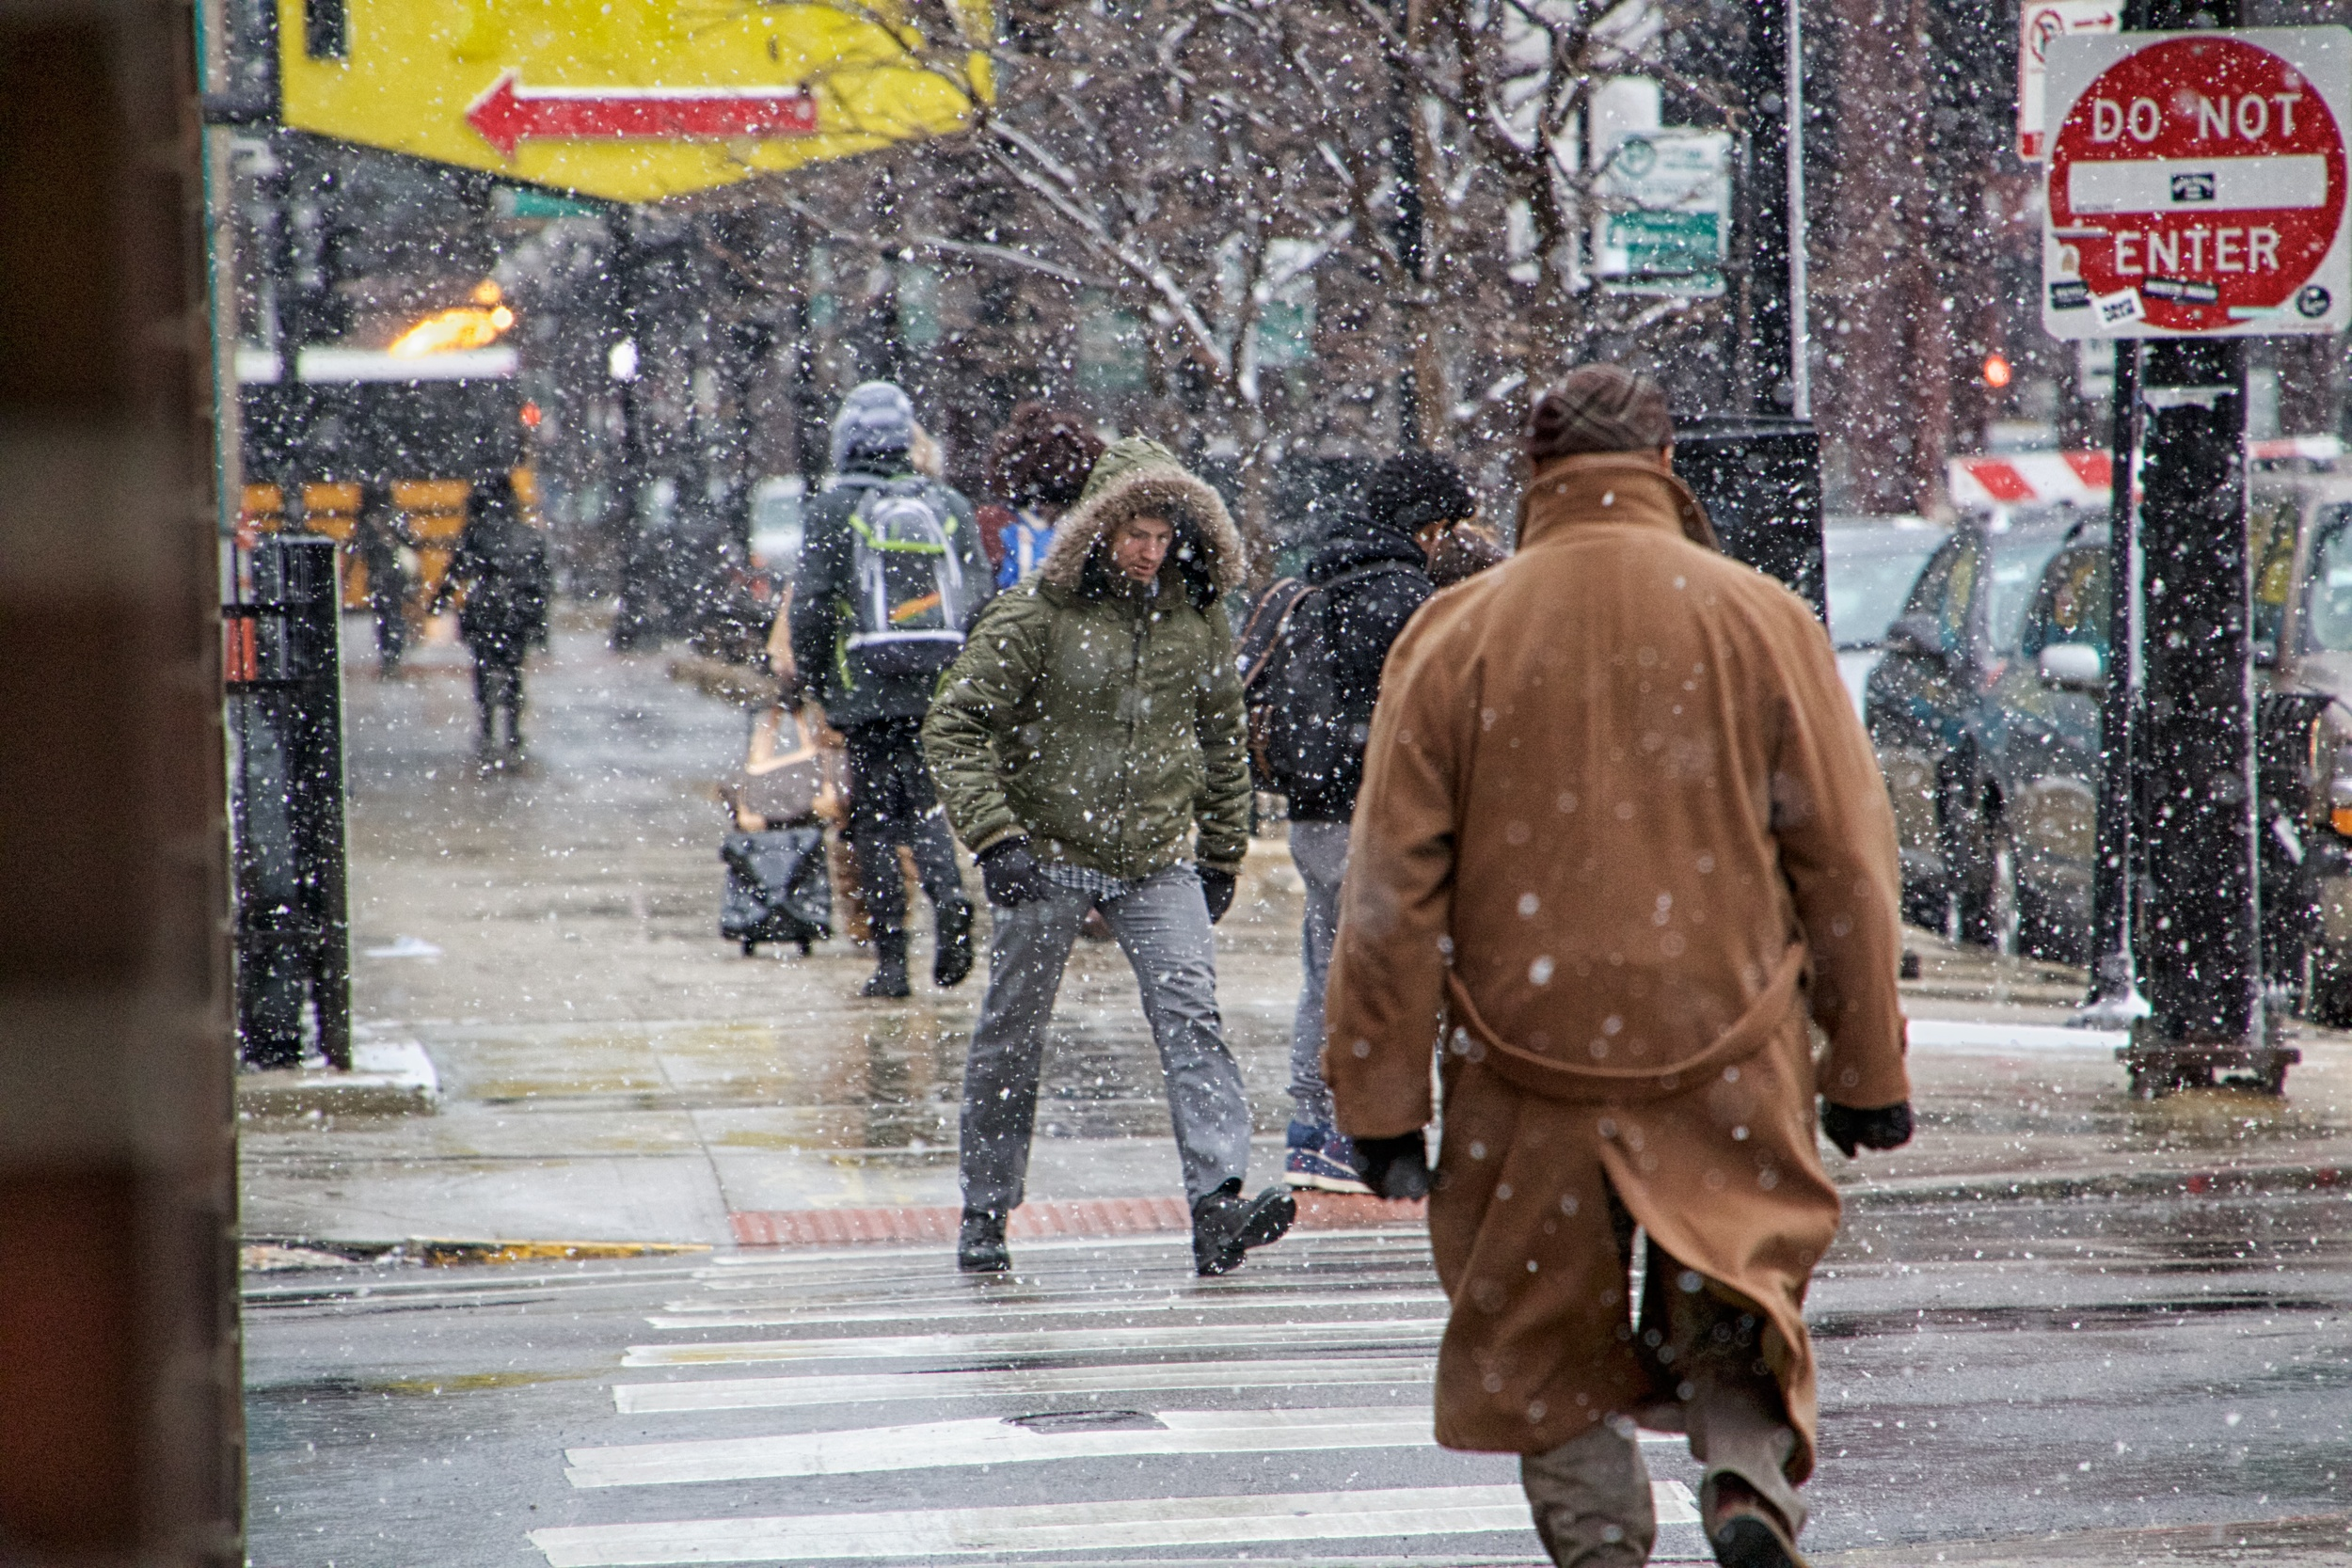 Pedestrians on Wabash Avenue